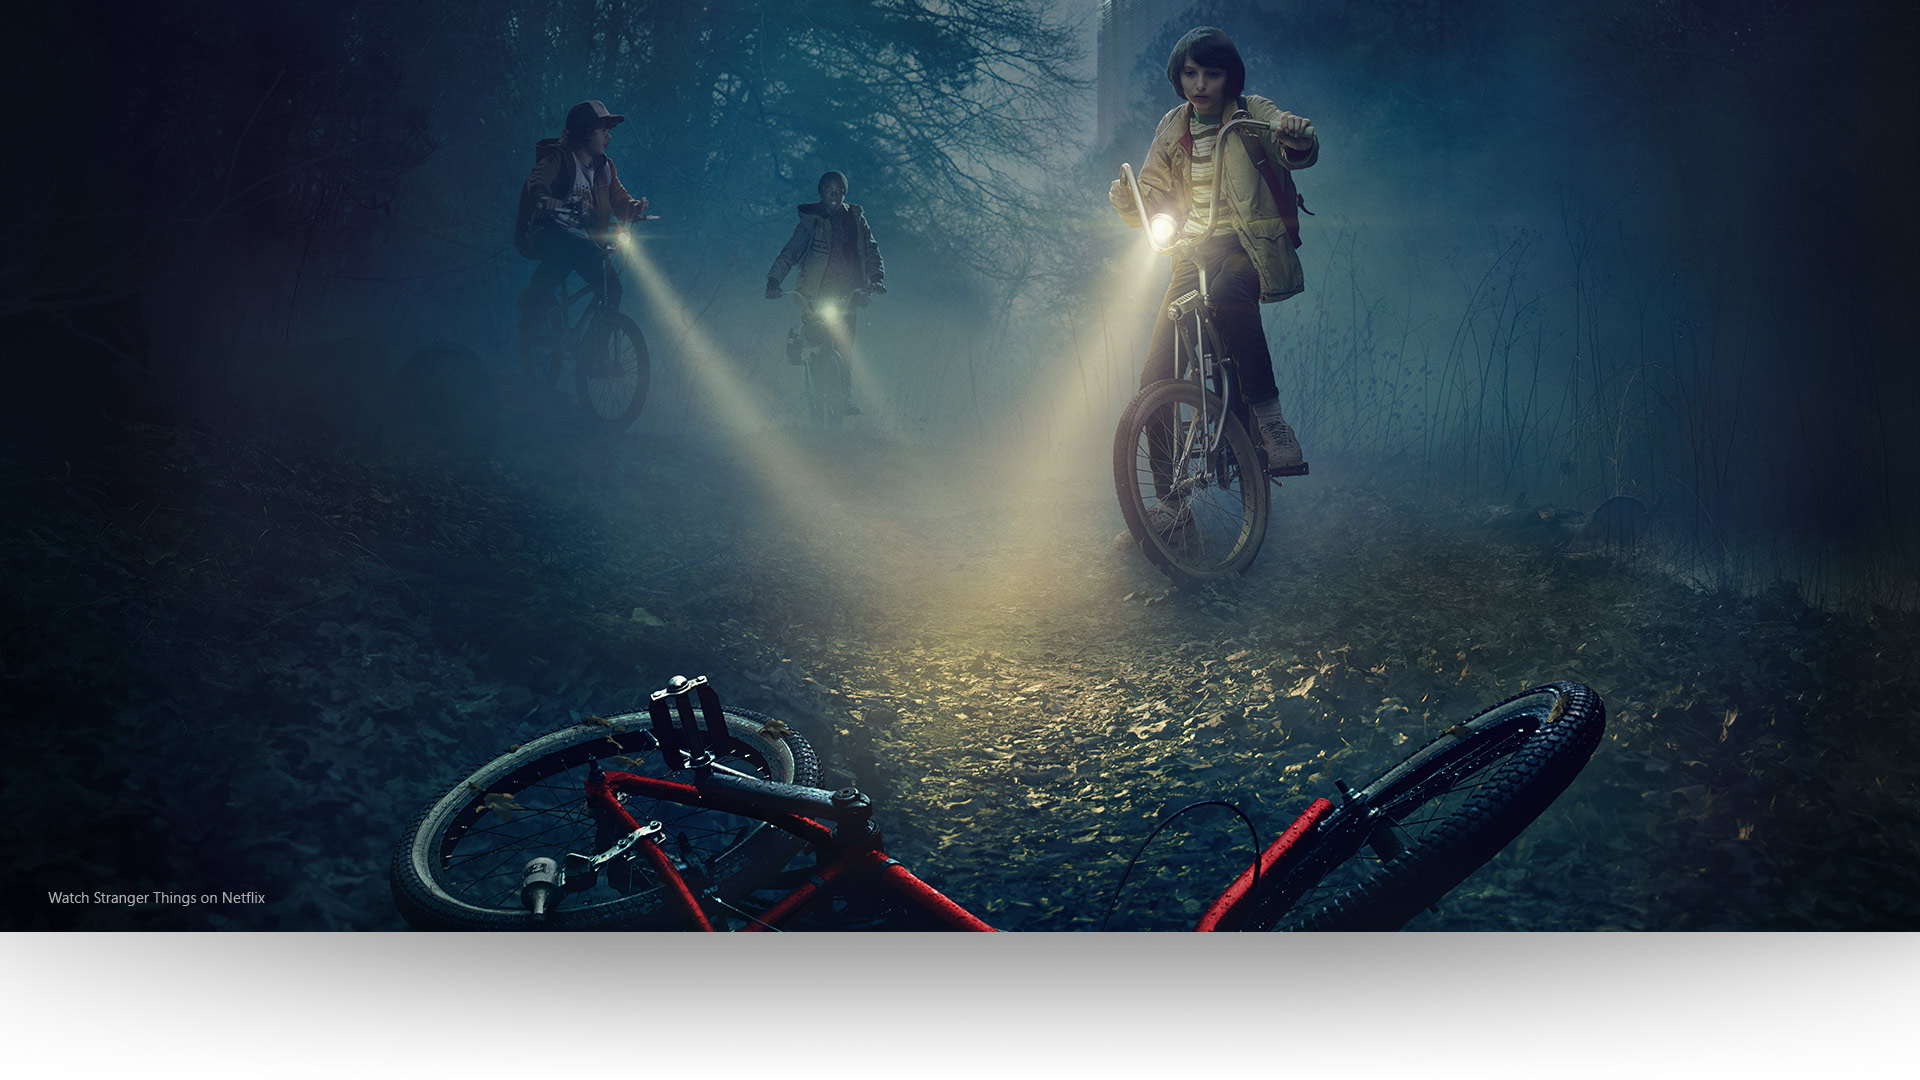 Stranger Things – Dustin, Lucas and Mike shine their lights on an abandoned bicycle on a gloomy forest path.